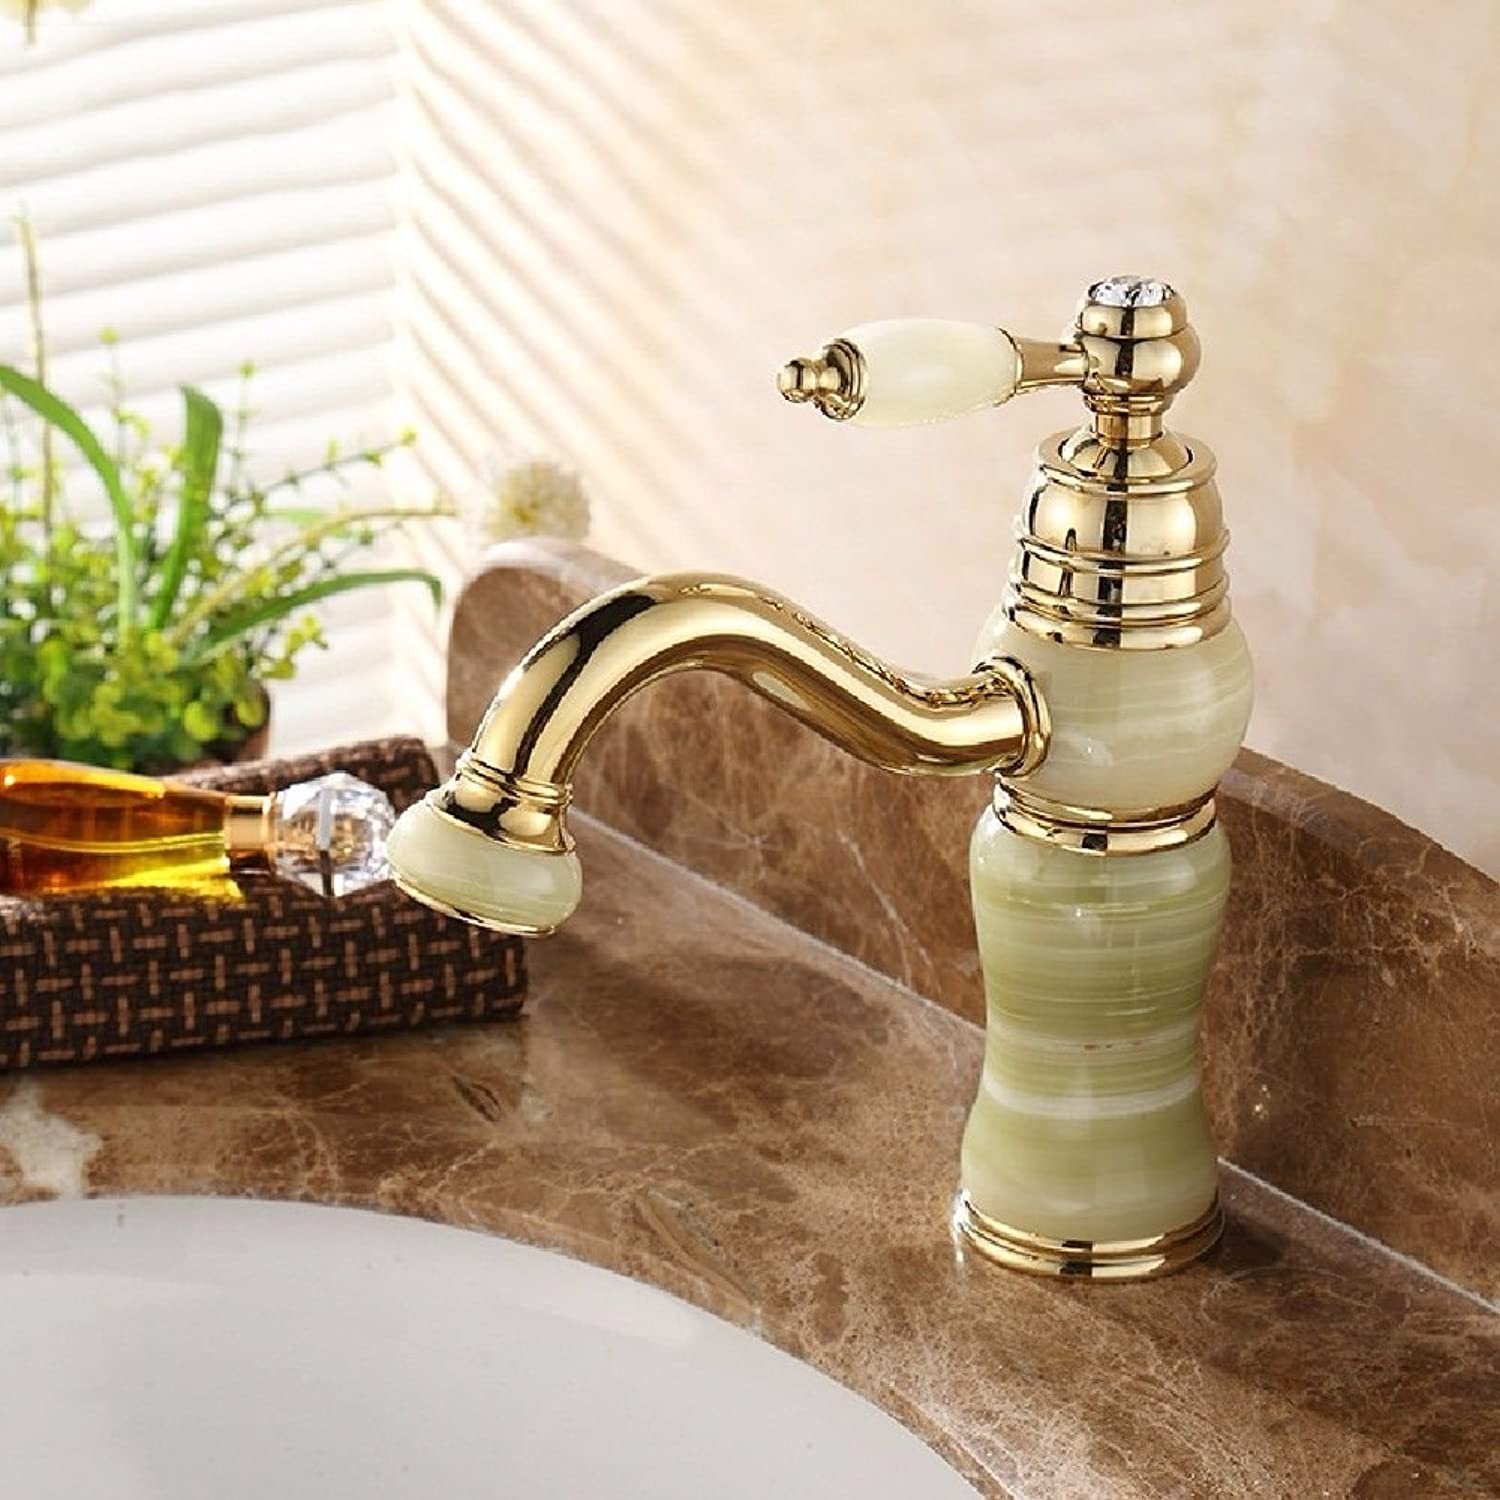 NewBorn Faucet Kitchen Or Bathroom Sink Mixer Tap Basin Taps Full Copper Cold Water Cabinet Wash B